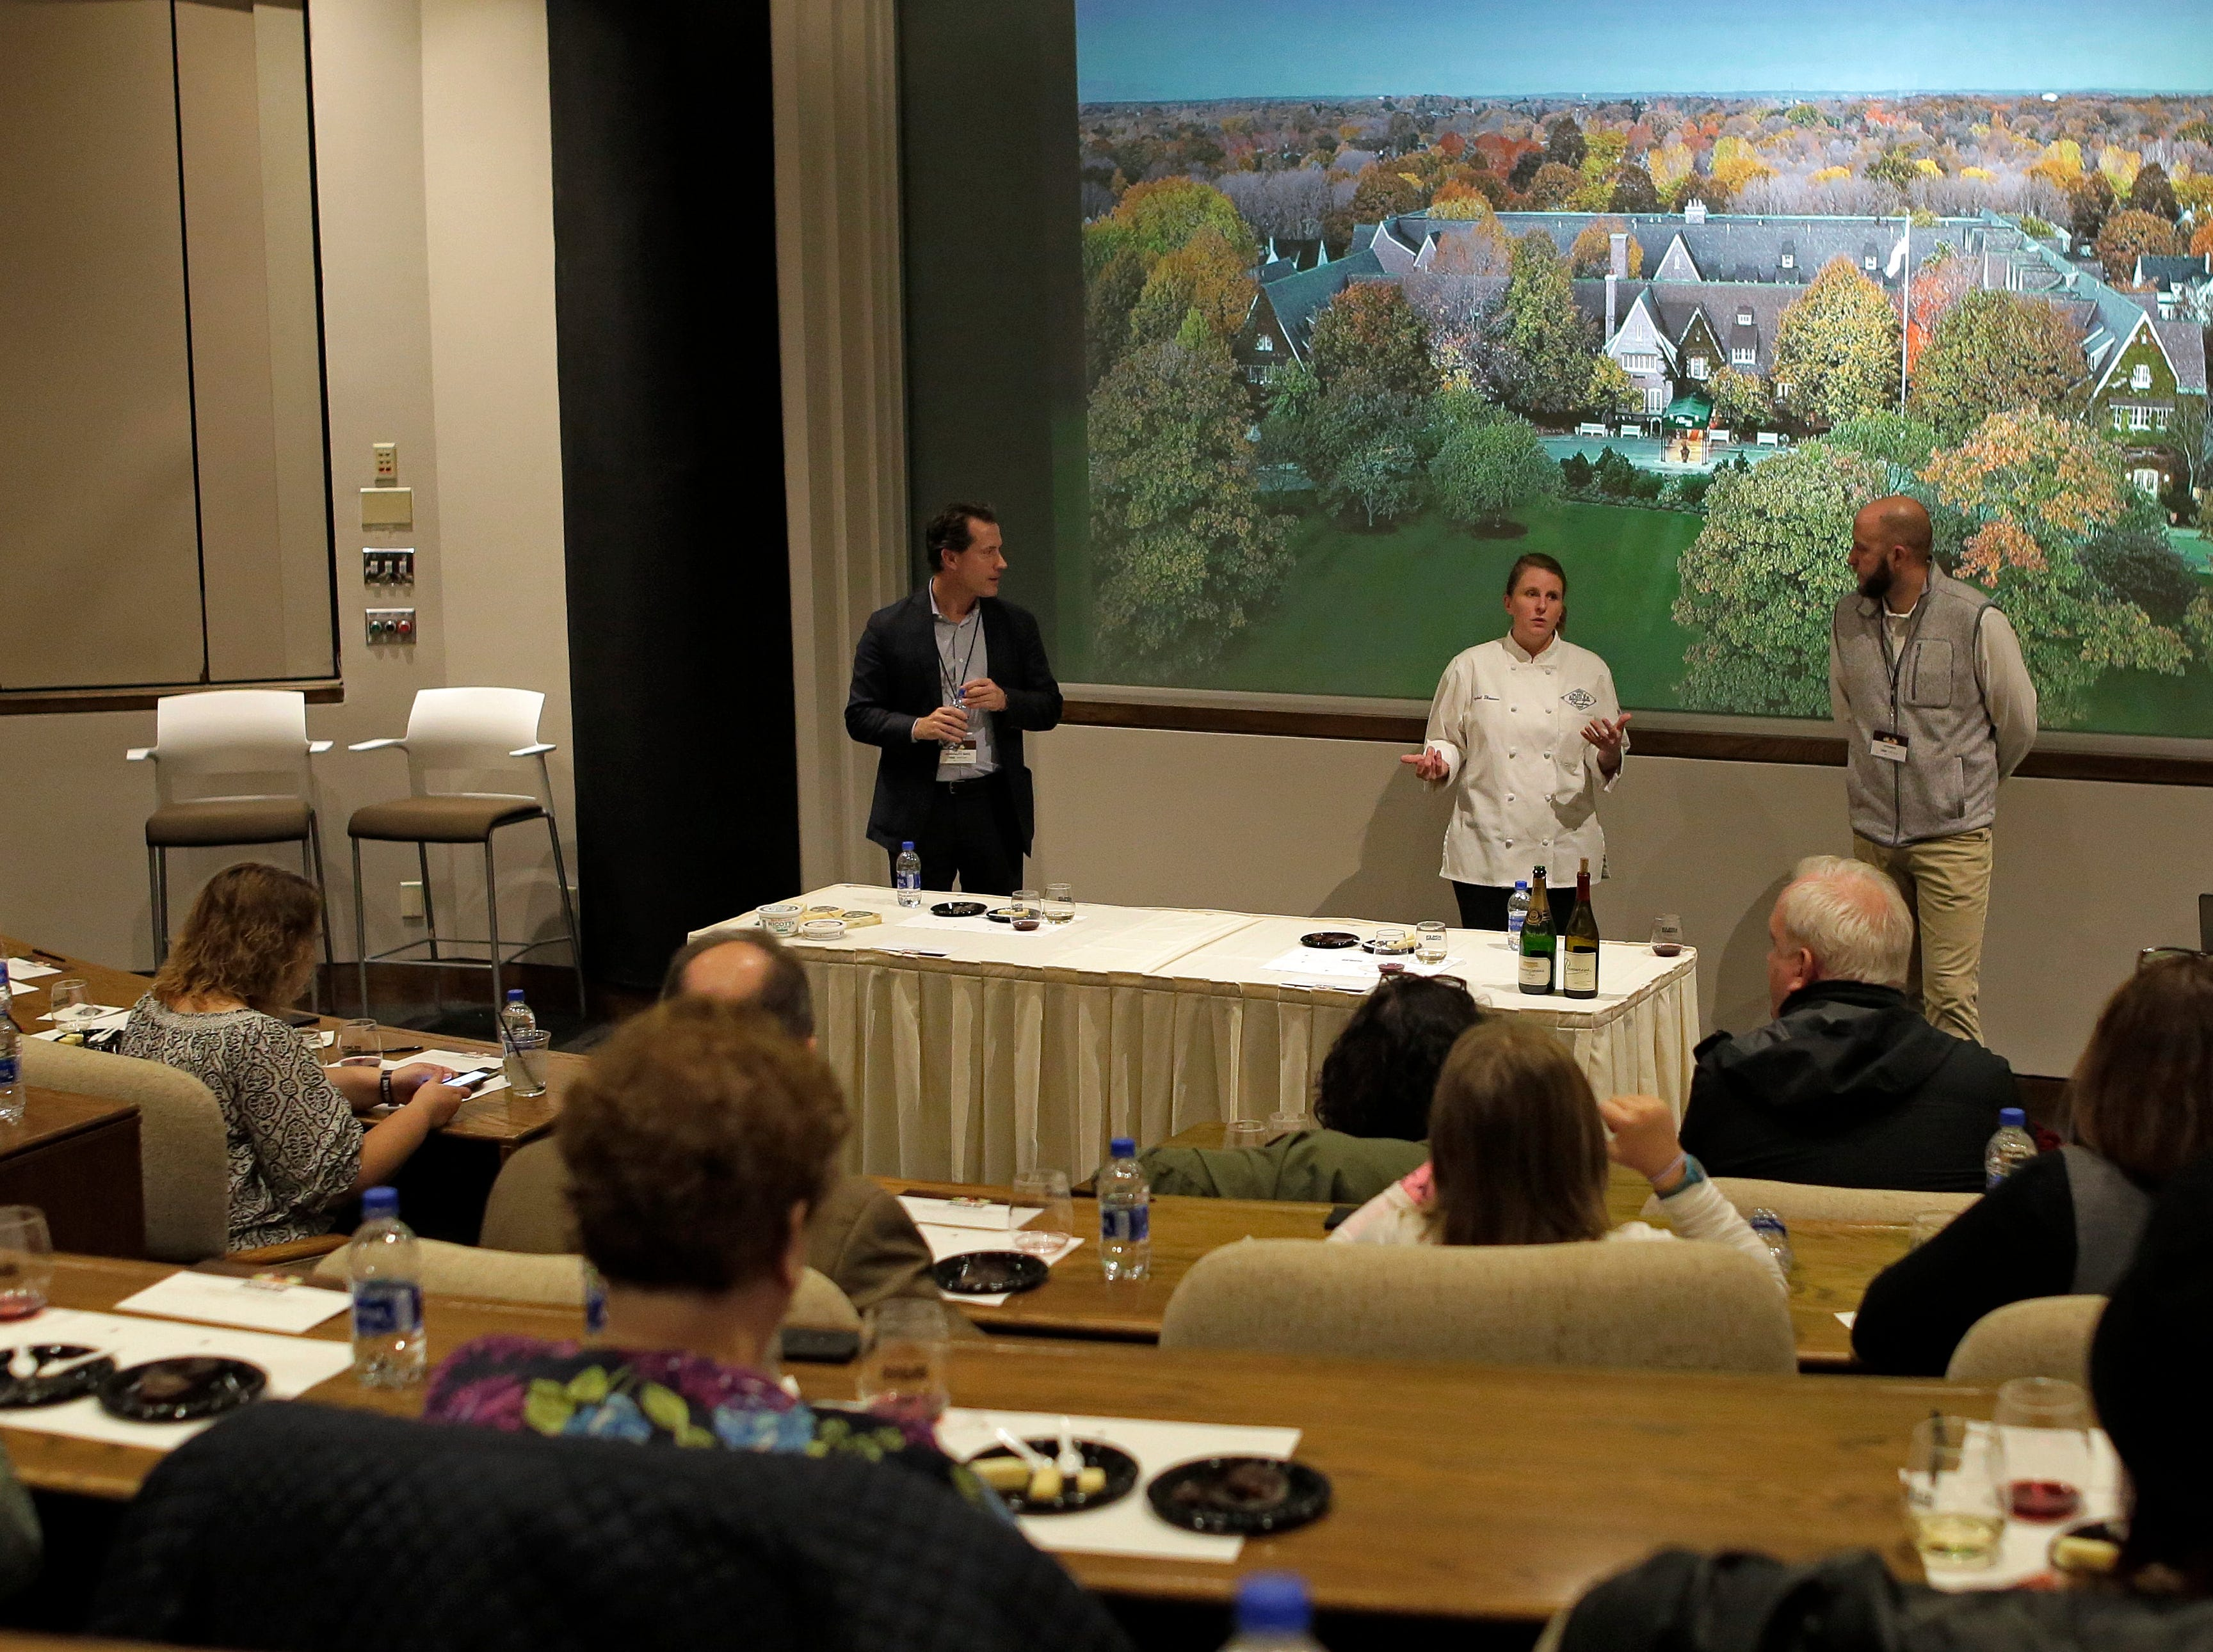 Kohler Chocolatier Crystal Thomas, center in white, explains some of the nuances of chocolate, wine and cheese during a presentation at Kohler Food and Wine, Friday, October 19, 2018, in Kohler, Wis.